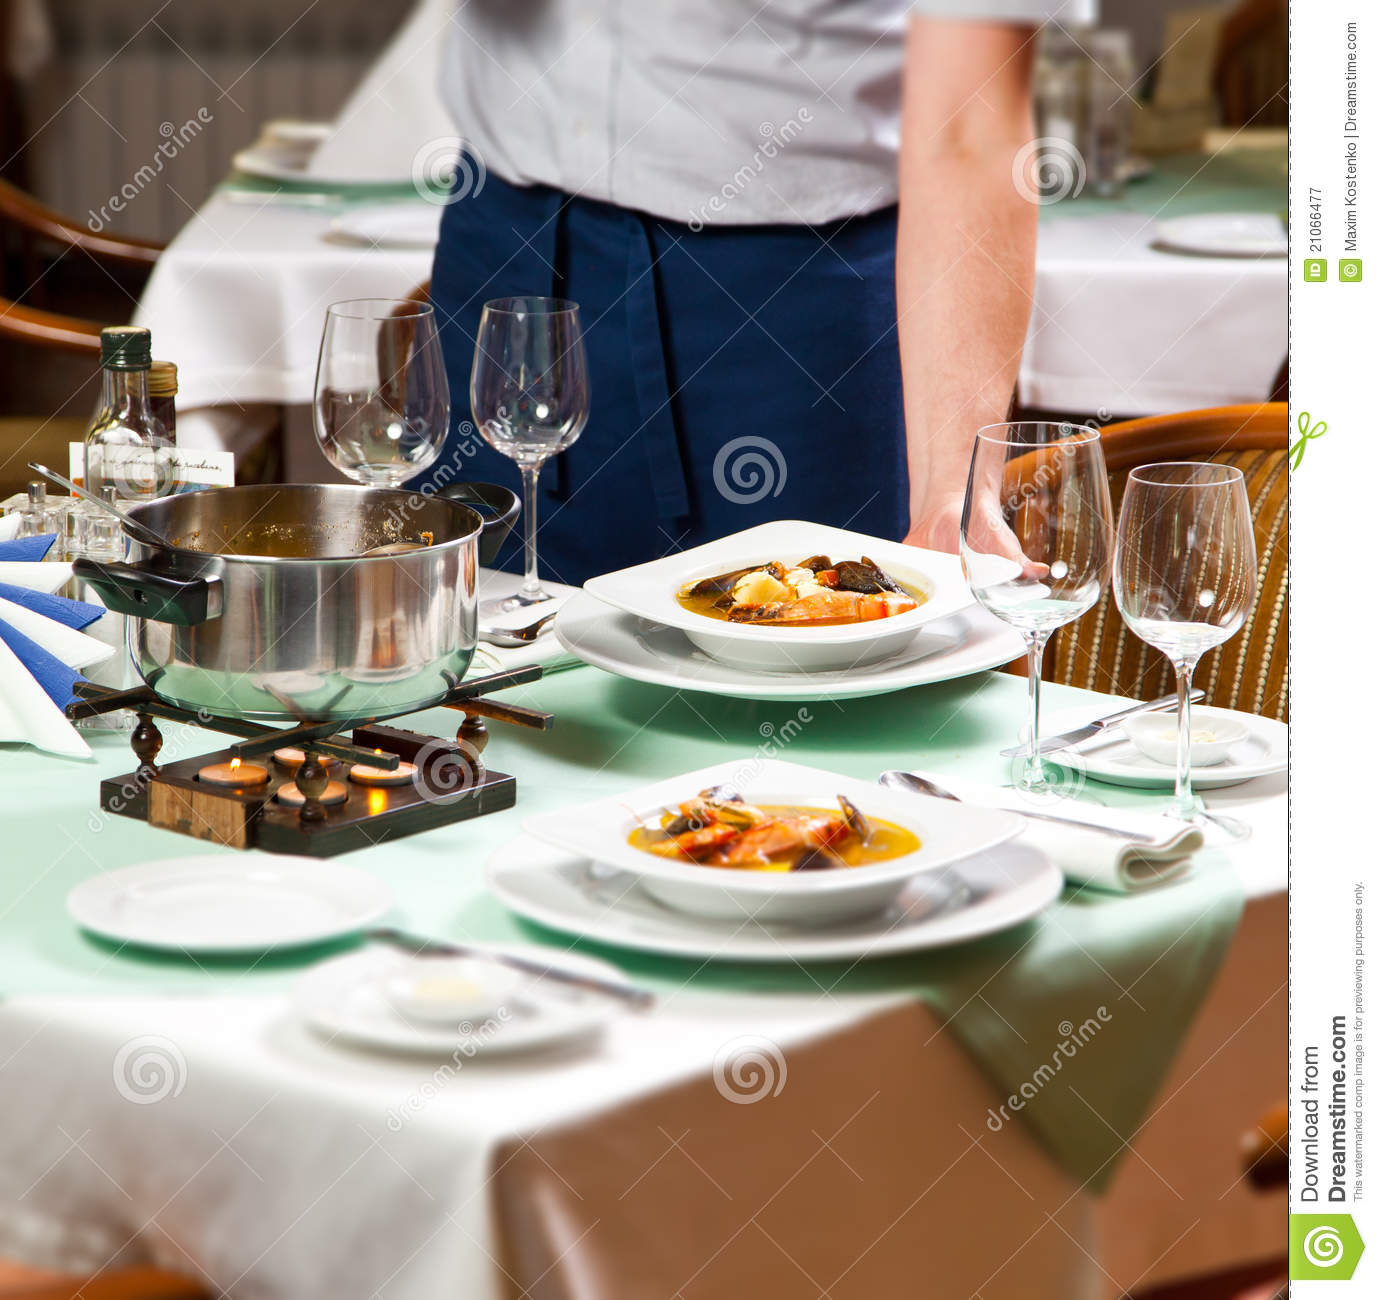 Waiter Serving Food At Restaurant Stock Image Image Of Squid White 21066477